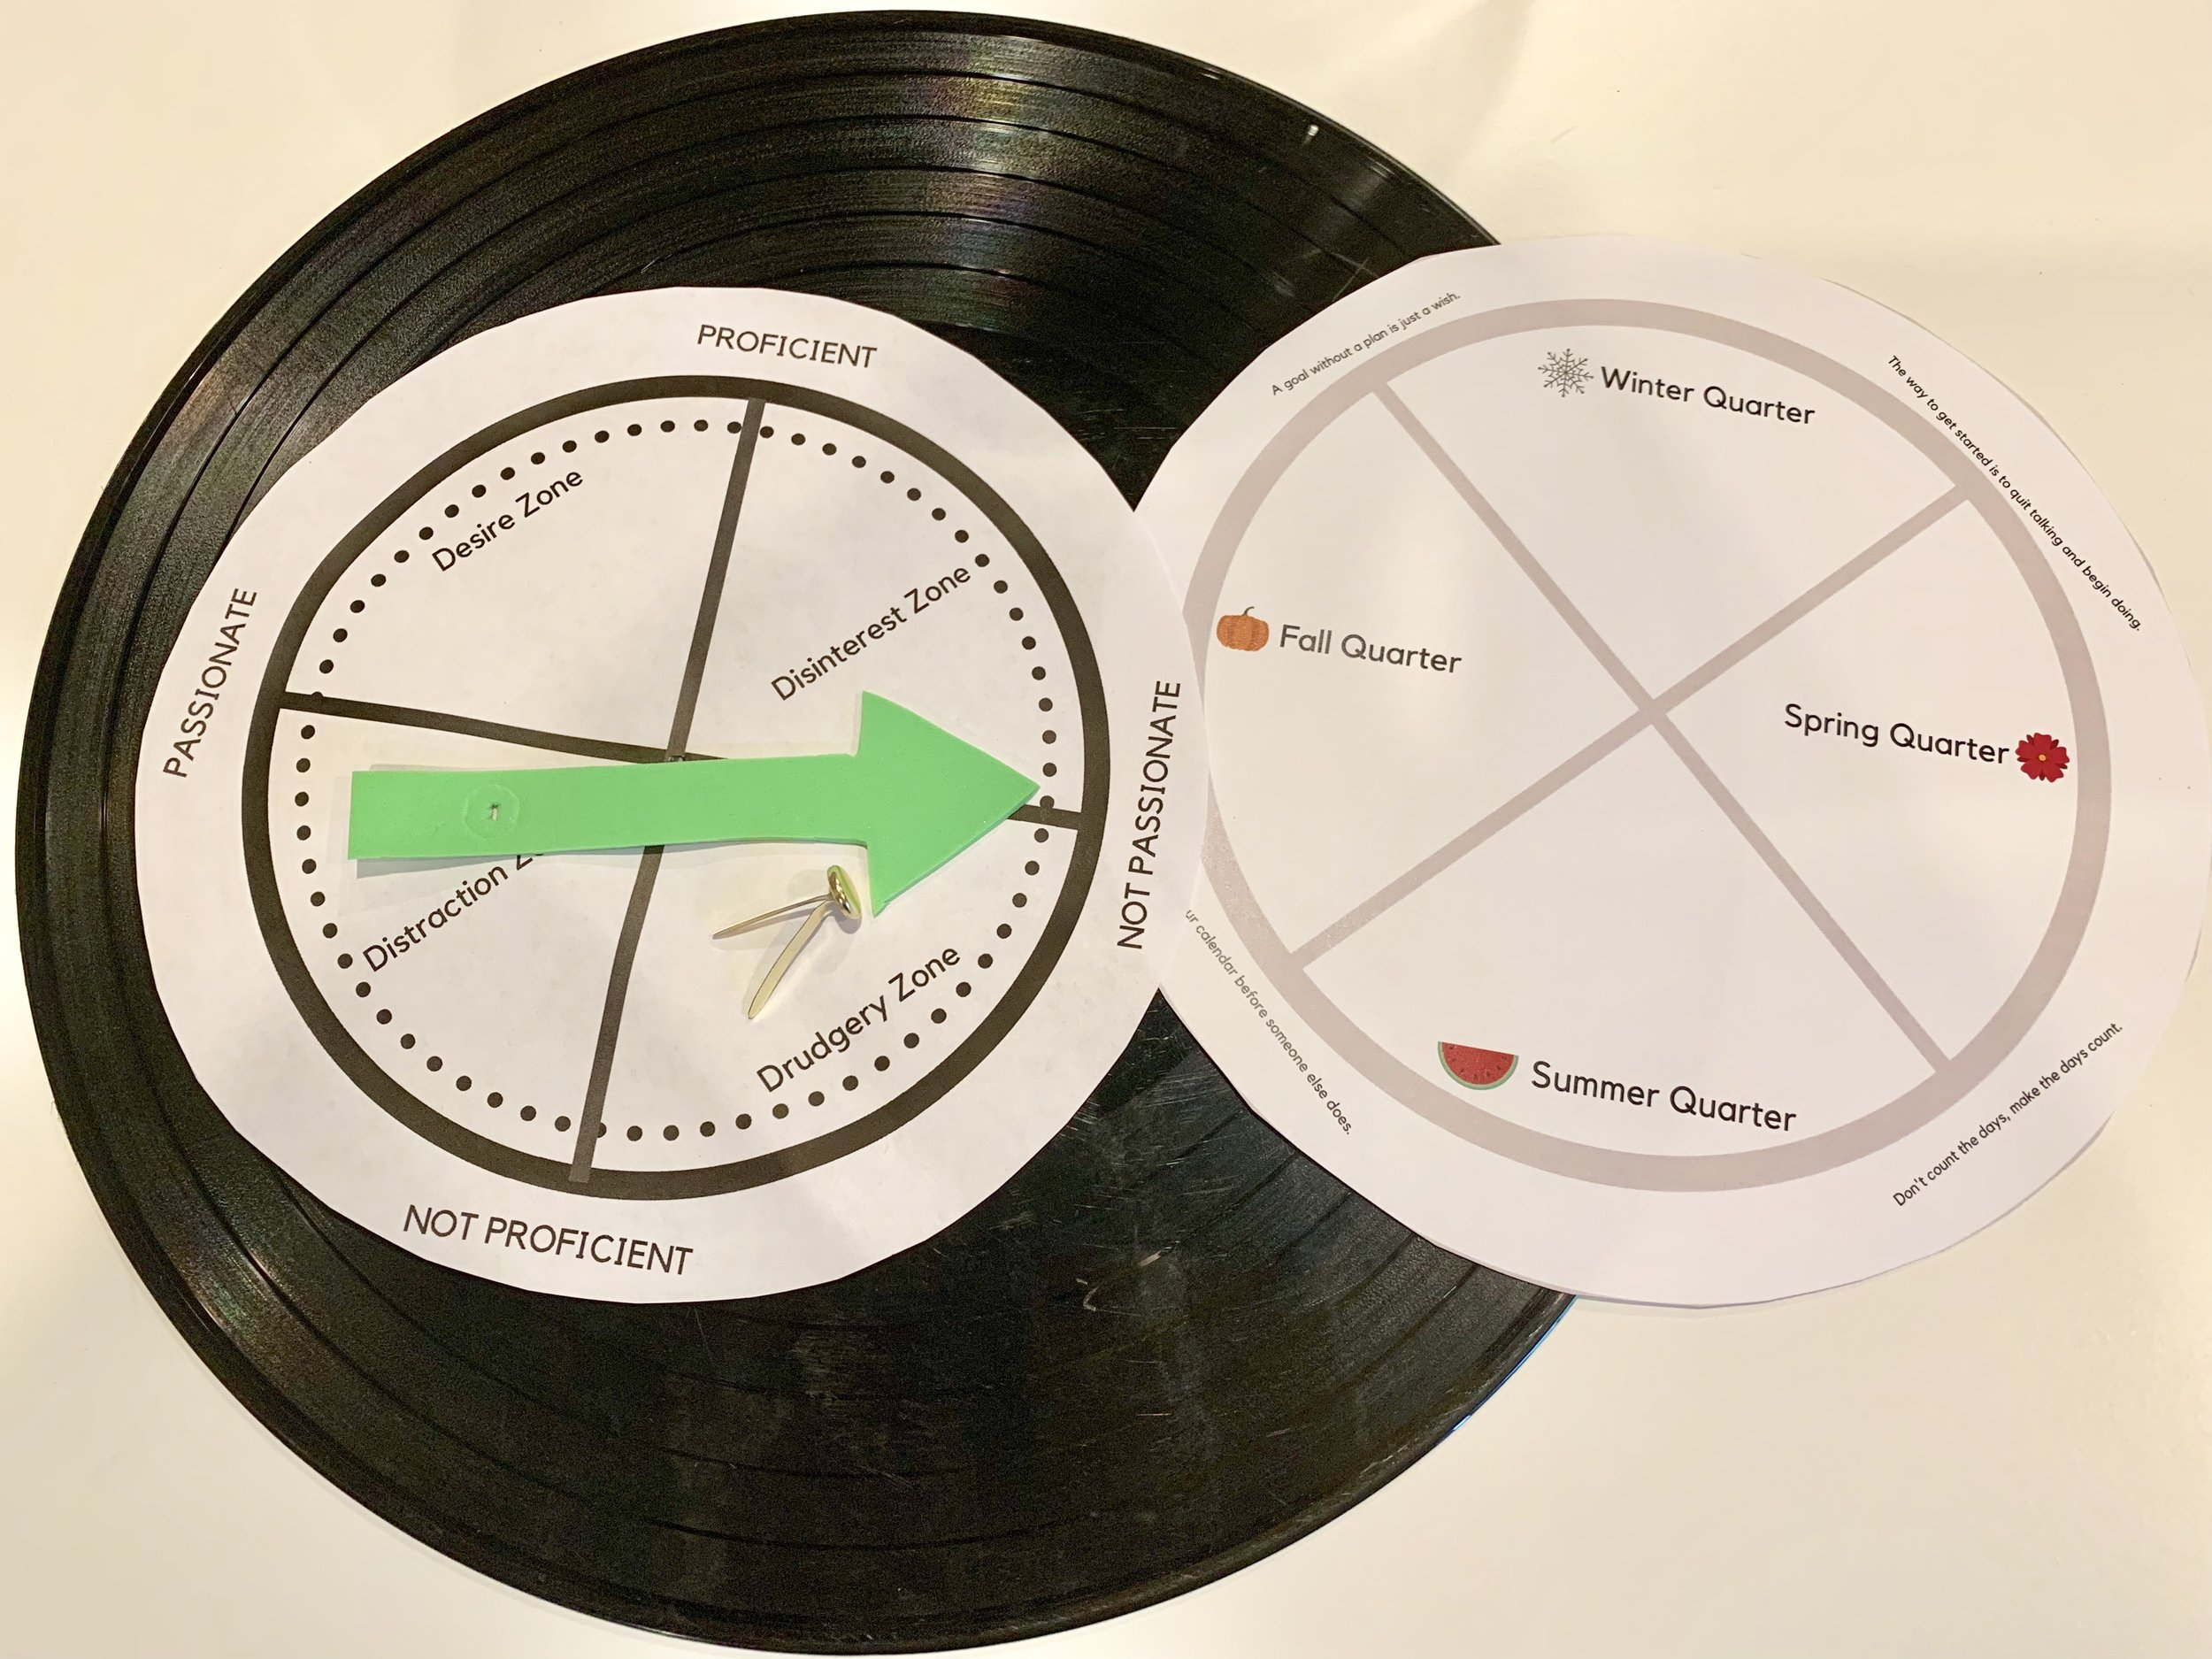 Find an old record, cut out the circles and write in the tasks that fit in each zone, cut an arrow from foam paper poke a hole through the center of each circle and arrow and fasten all of them to the record with a brad.